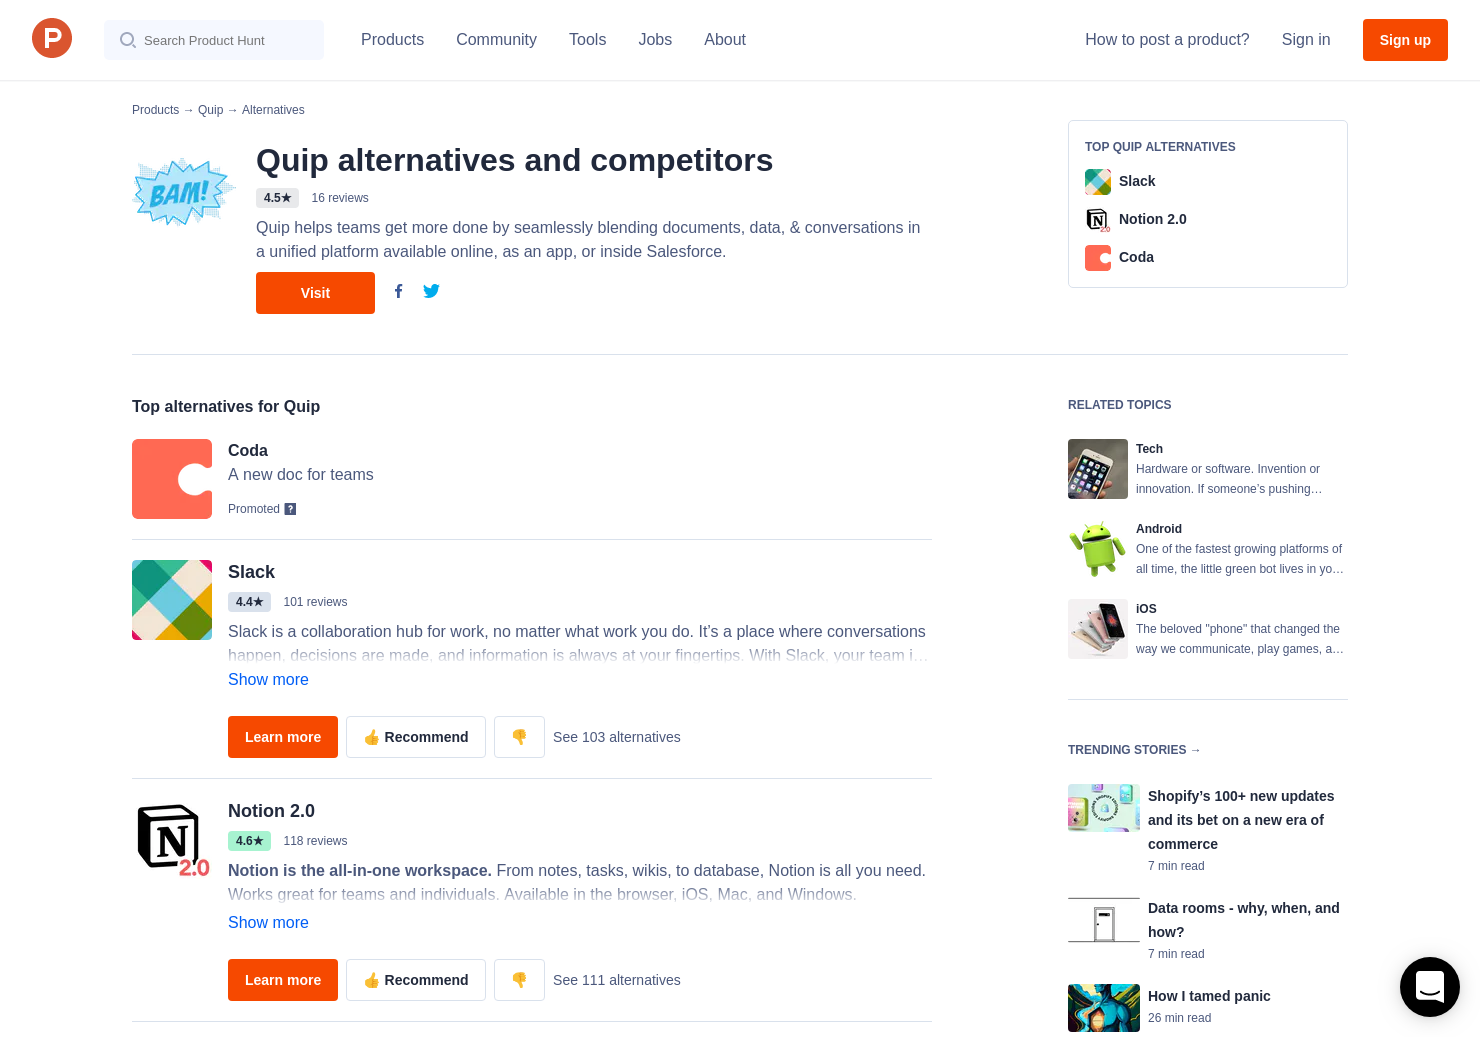 21 Alternatives to Quip 3 0 | Product Hunt